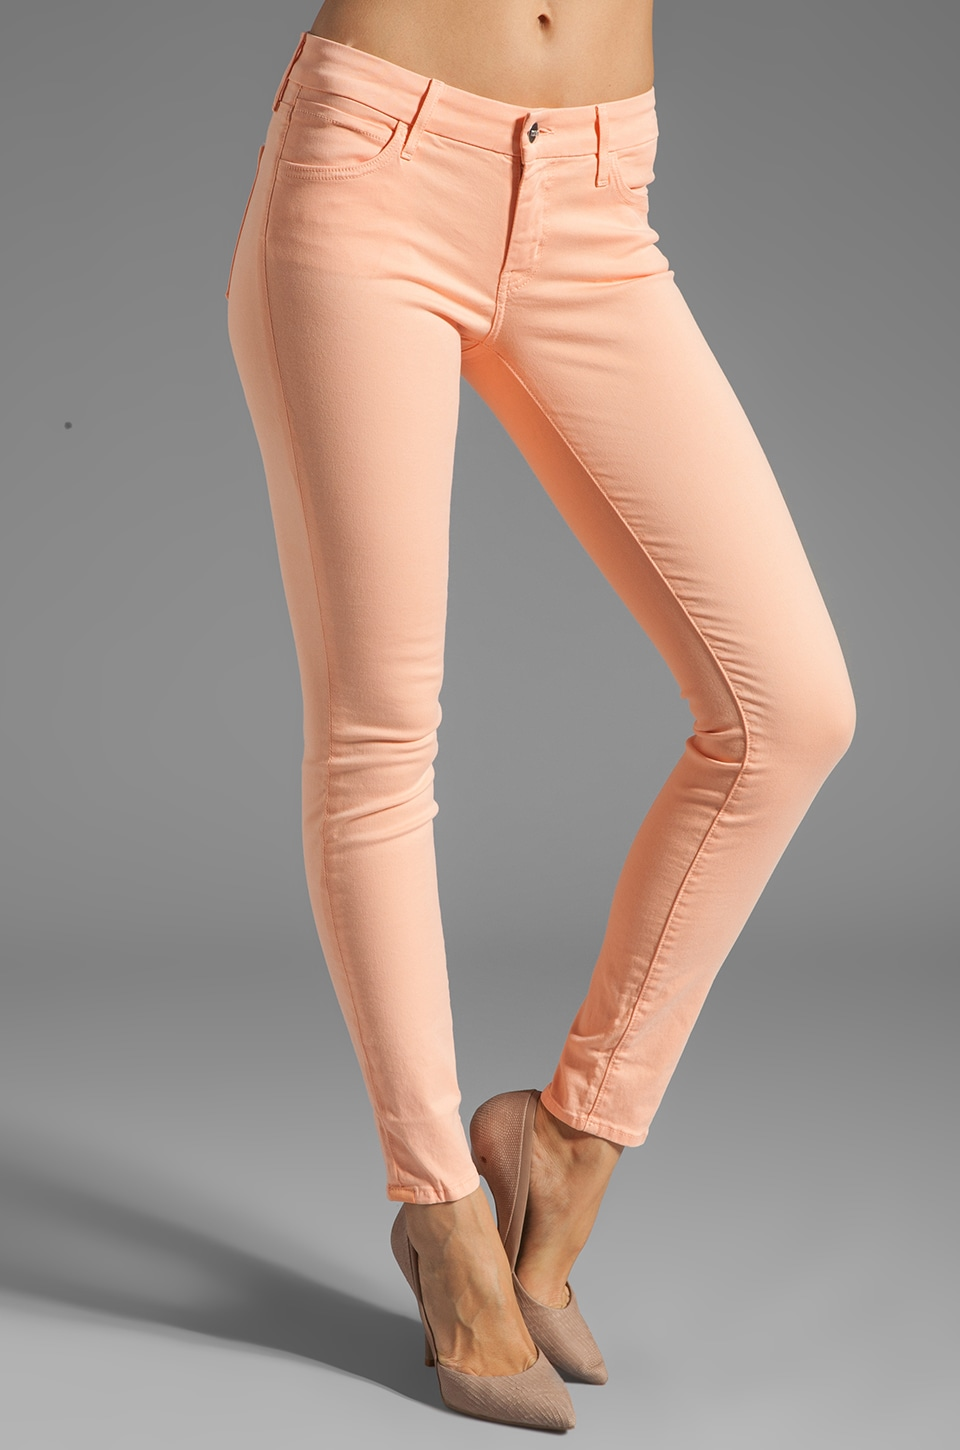 Koral Denim Pastel Skinny in Peach